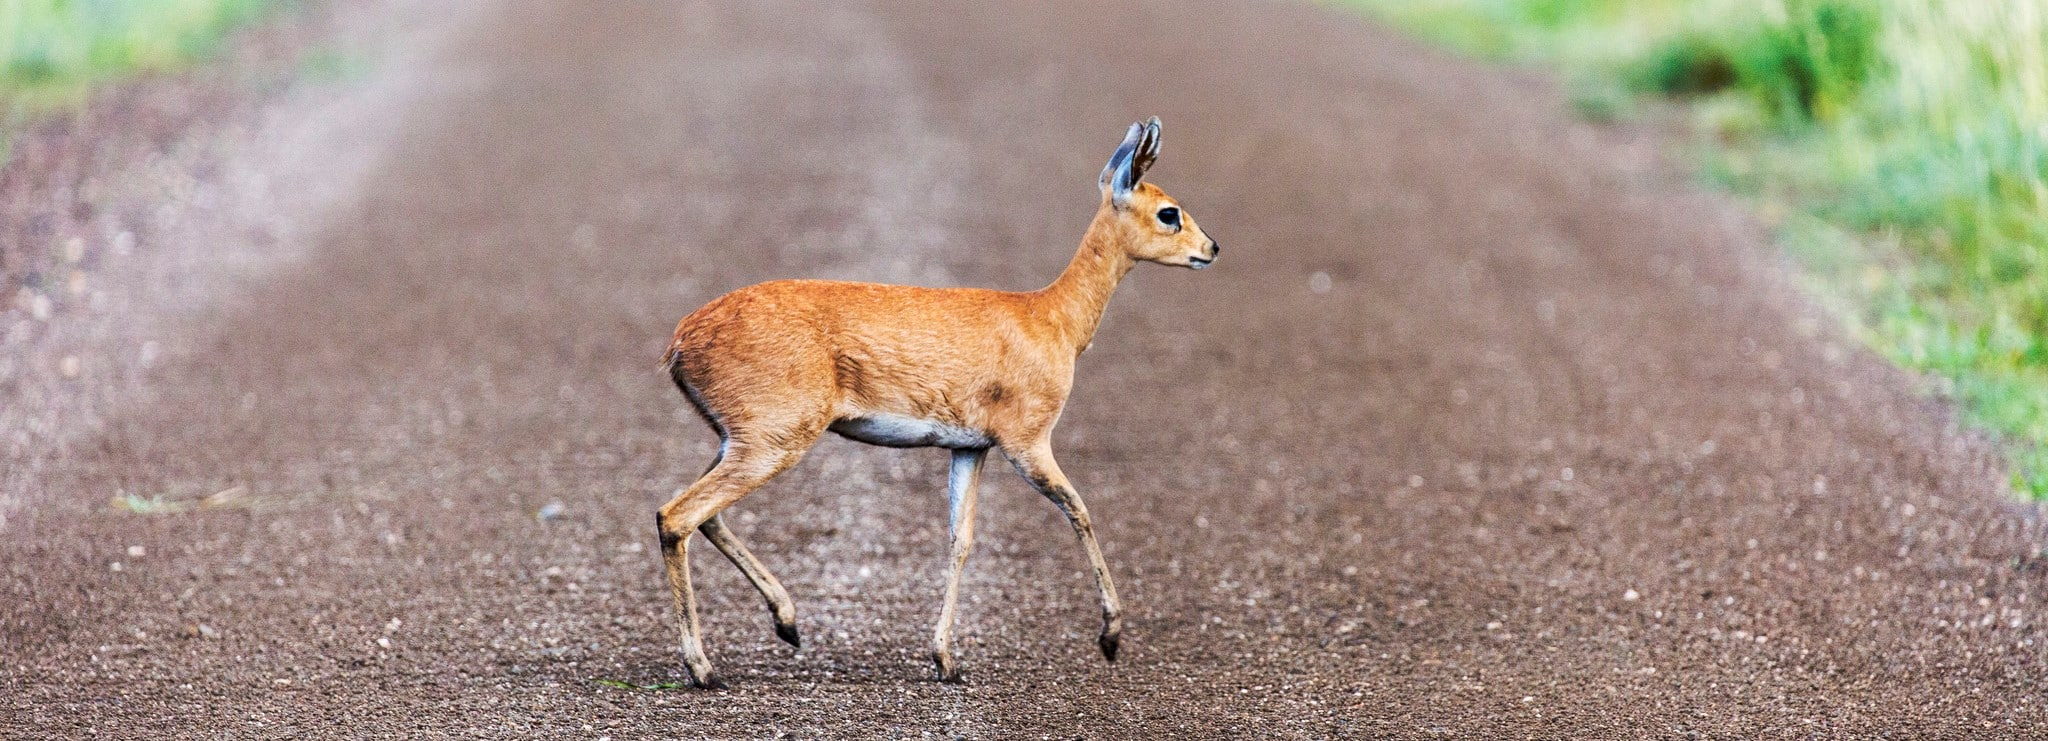 Steenbok crossing, sheldrickfalls